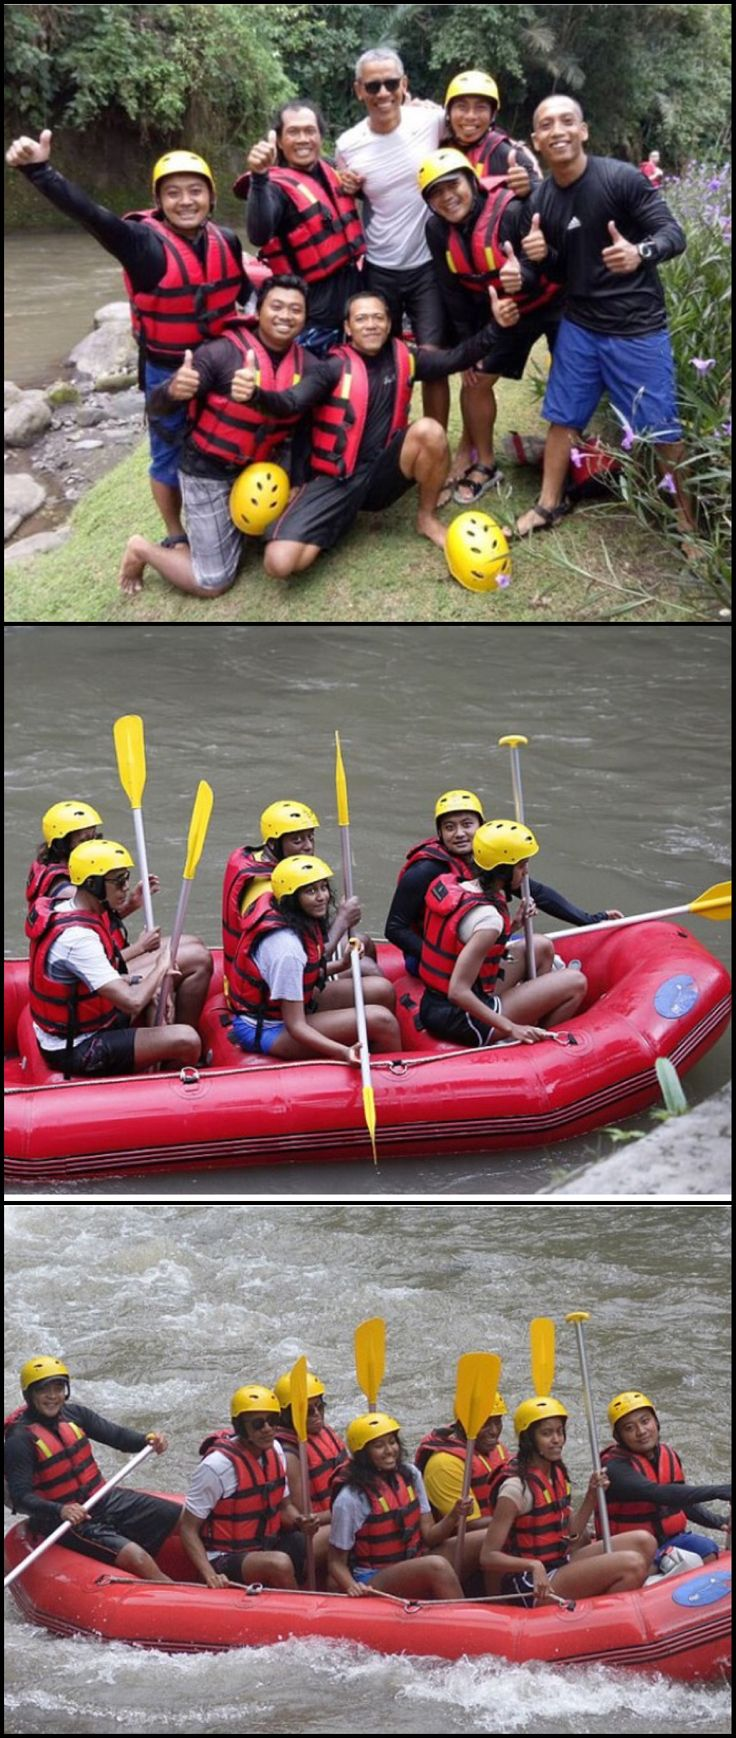 #TheObamas go #rafting at #BongkasaVillage in #Badung on #Baliisland #Indonesia #June26th #2016 #TheObamas #FamilyVacation #His #Mother Side Of The #Family Barack Obama lived there in the 1960s after his mother Ann Dunham married second husband Lolo Soetoro, a native #Indonesian #44thPresident #BarackObama #FirstLady #MichelleObama #MaliaObama #SashaObama #ObamaFamily #ObamaGirls #ObamaLegacy #ObamaHistory #ObamaLibrary #ObamaFoundation Obama.org